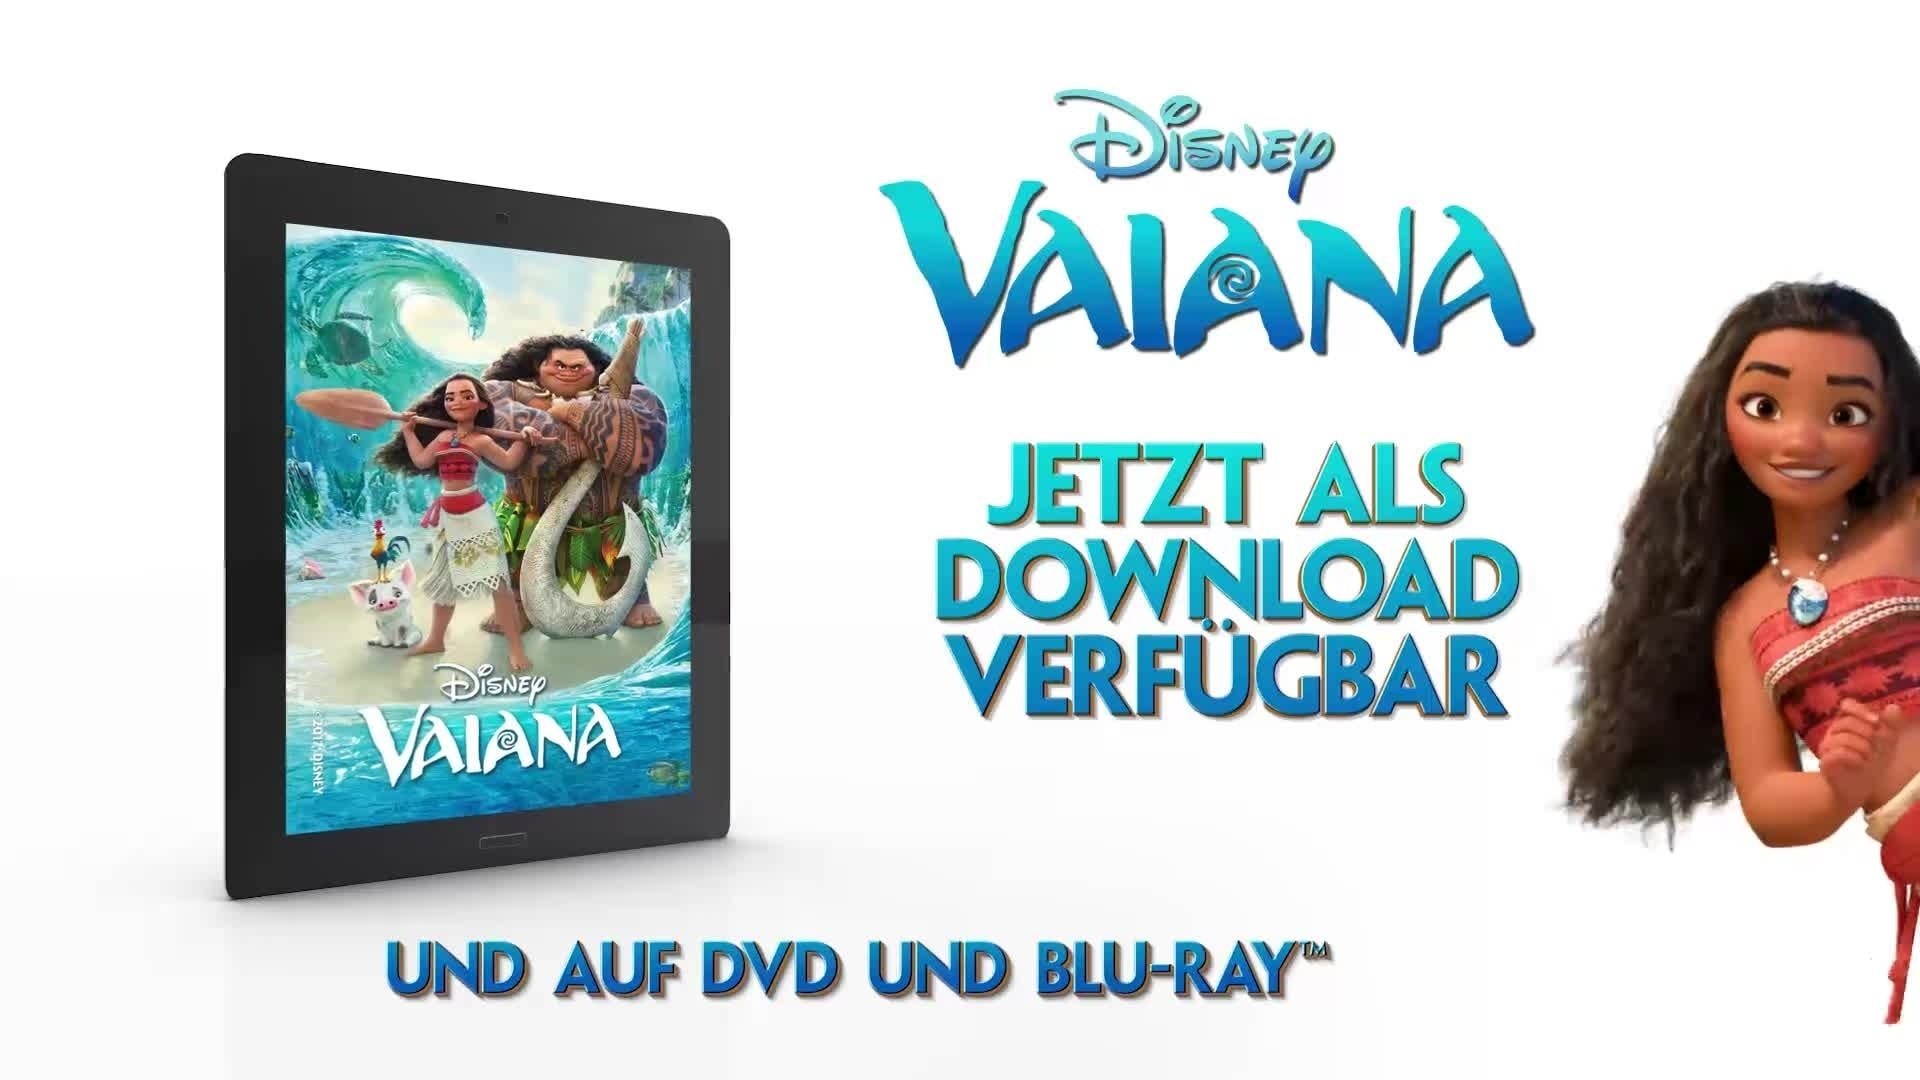 Vaiana - Auf DVD, Blu-Ray, 3D Blu-Ray & als digitaler Download